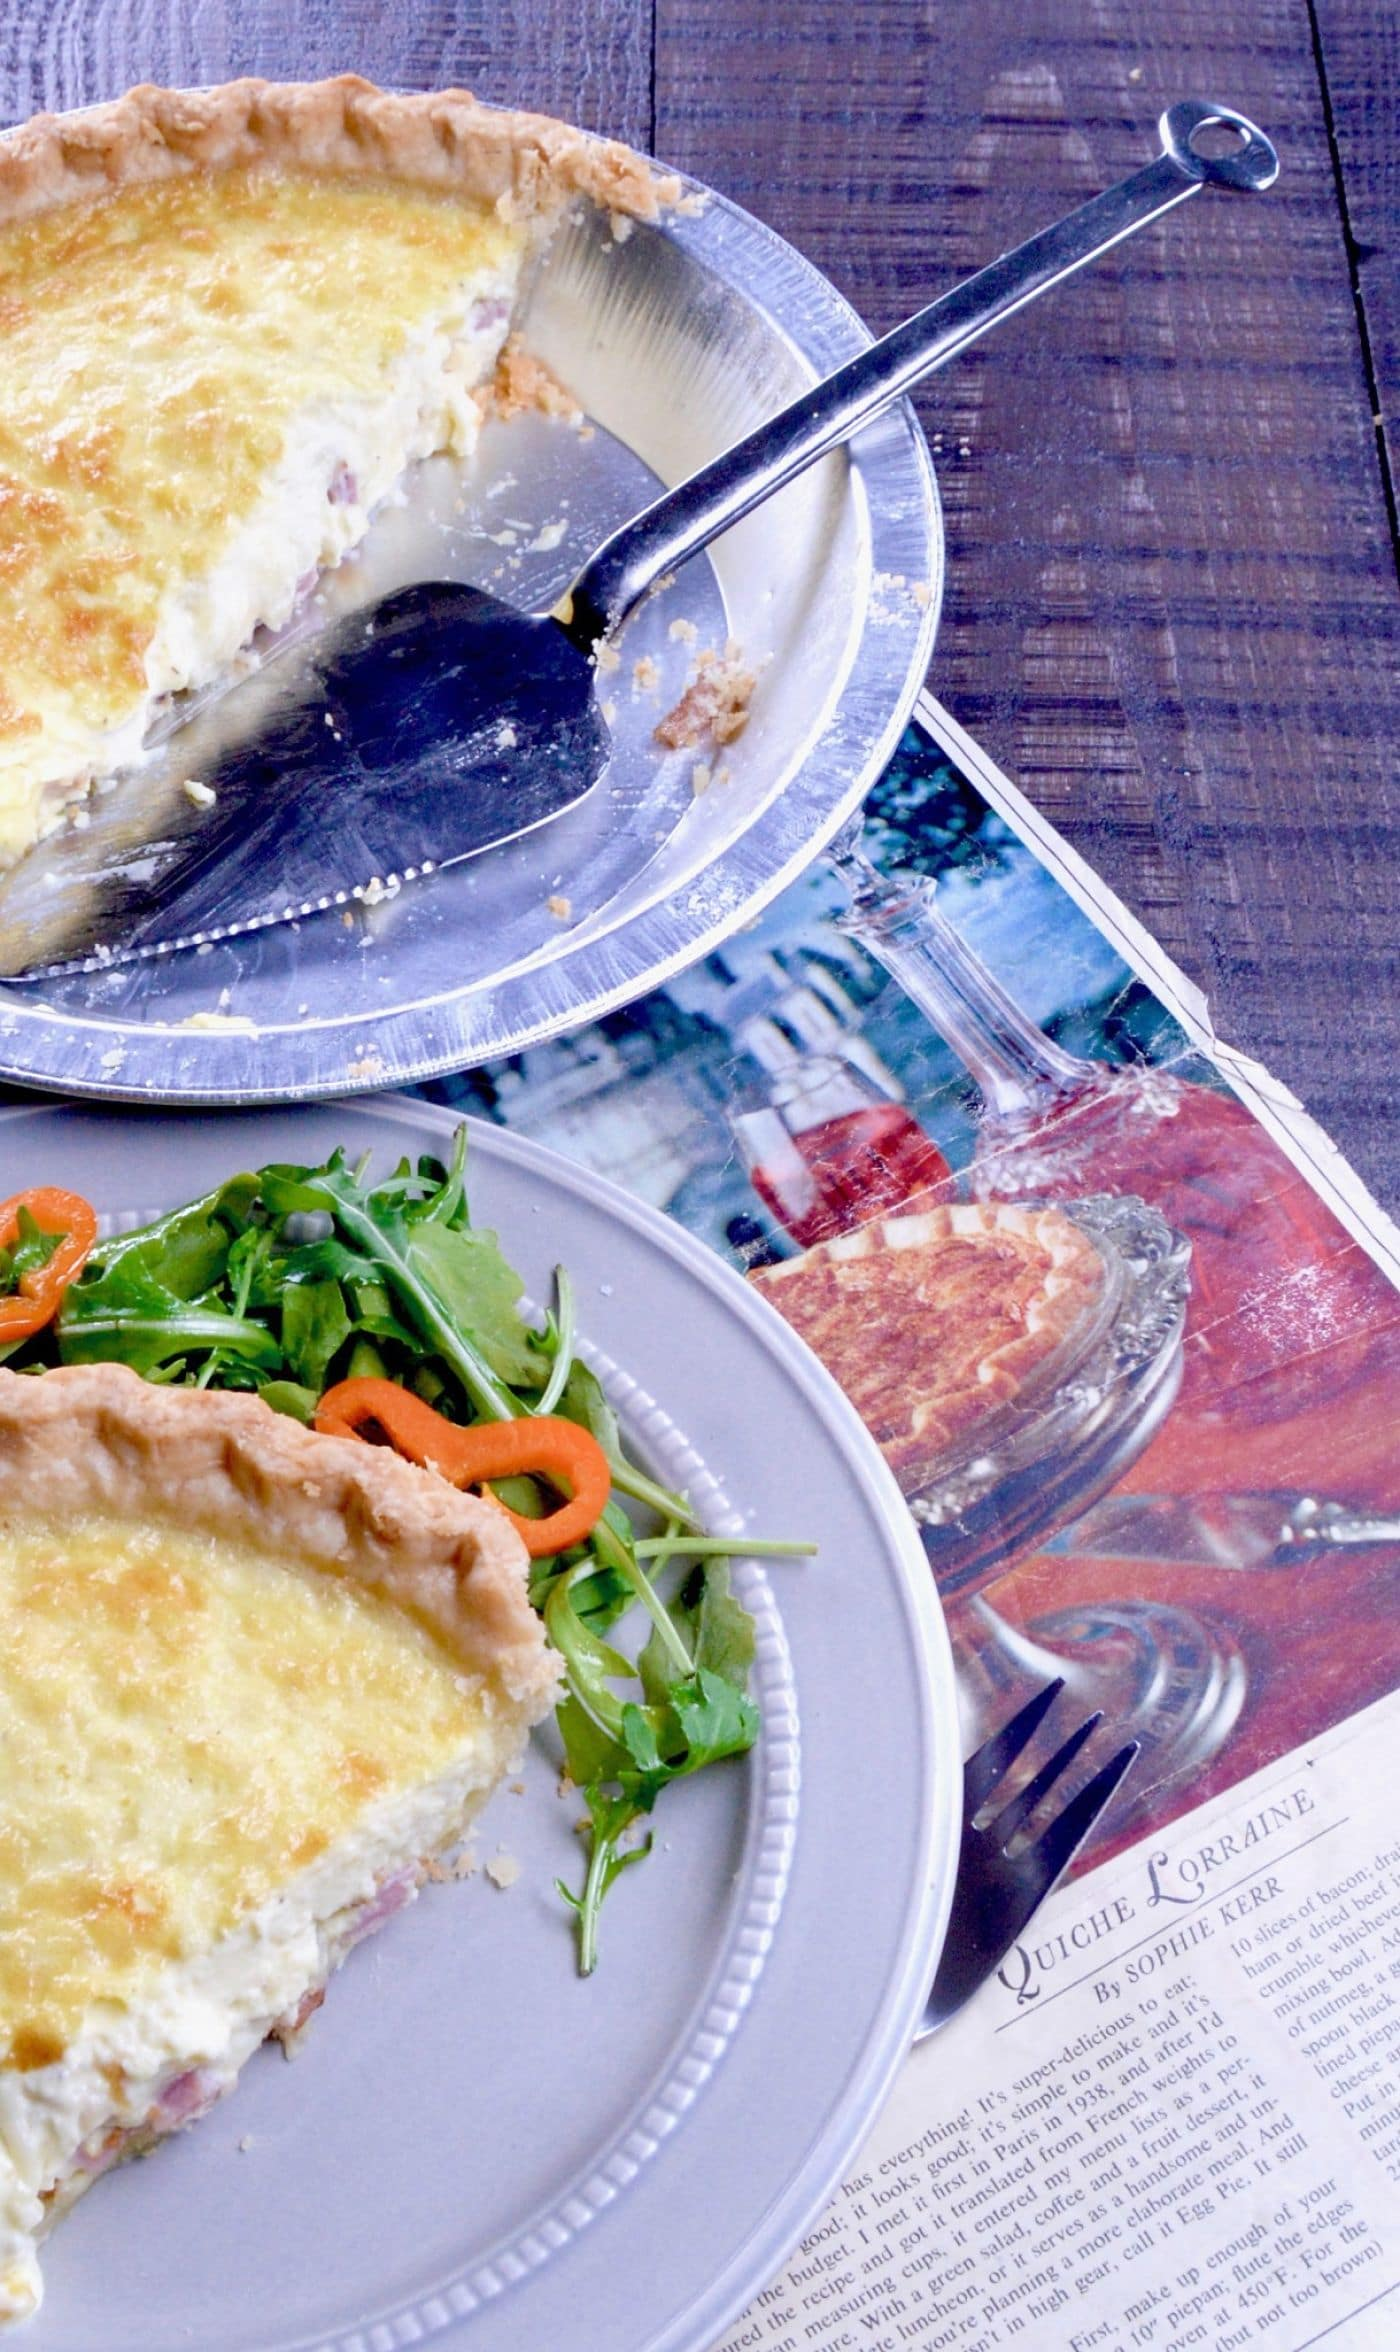 No Fail Quiche Lorraine, an easy yet impressive recipe shown along side 1965 Magazine from Woman's day.